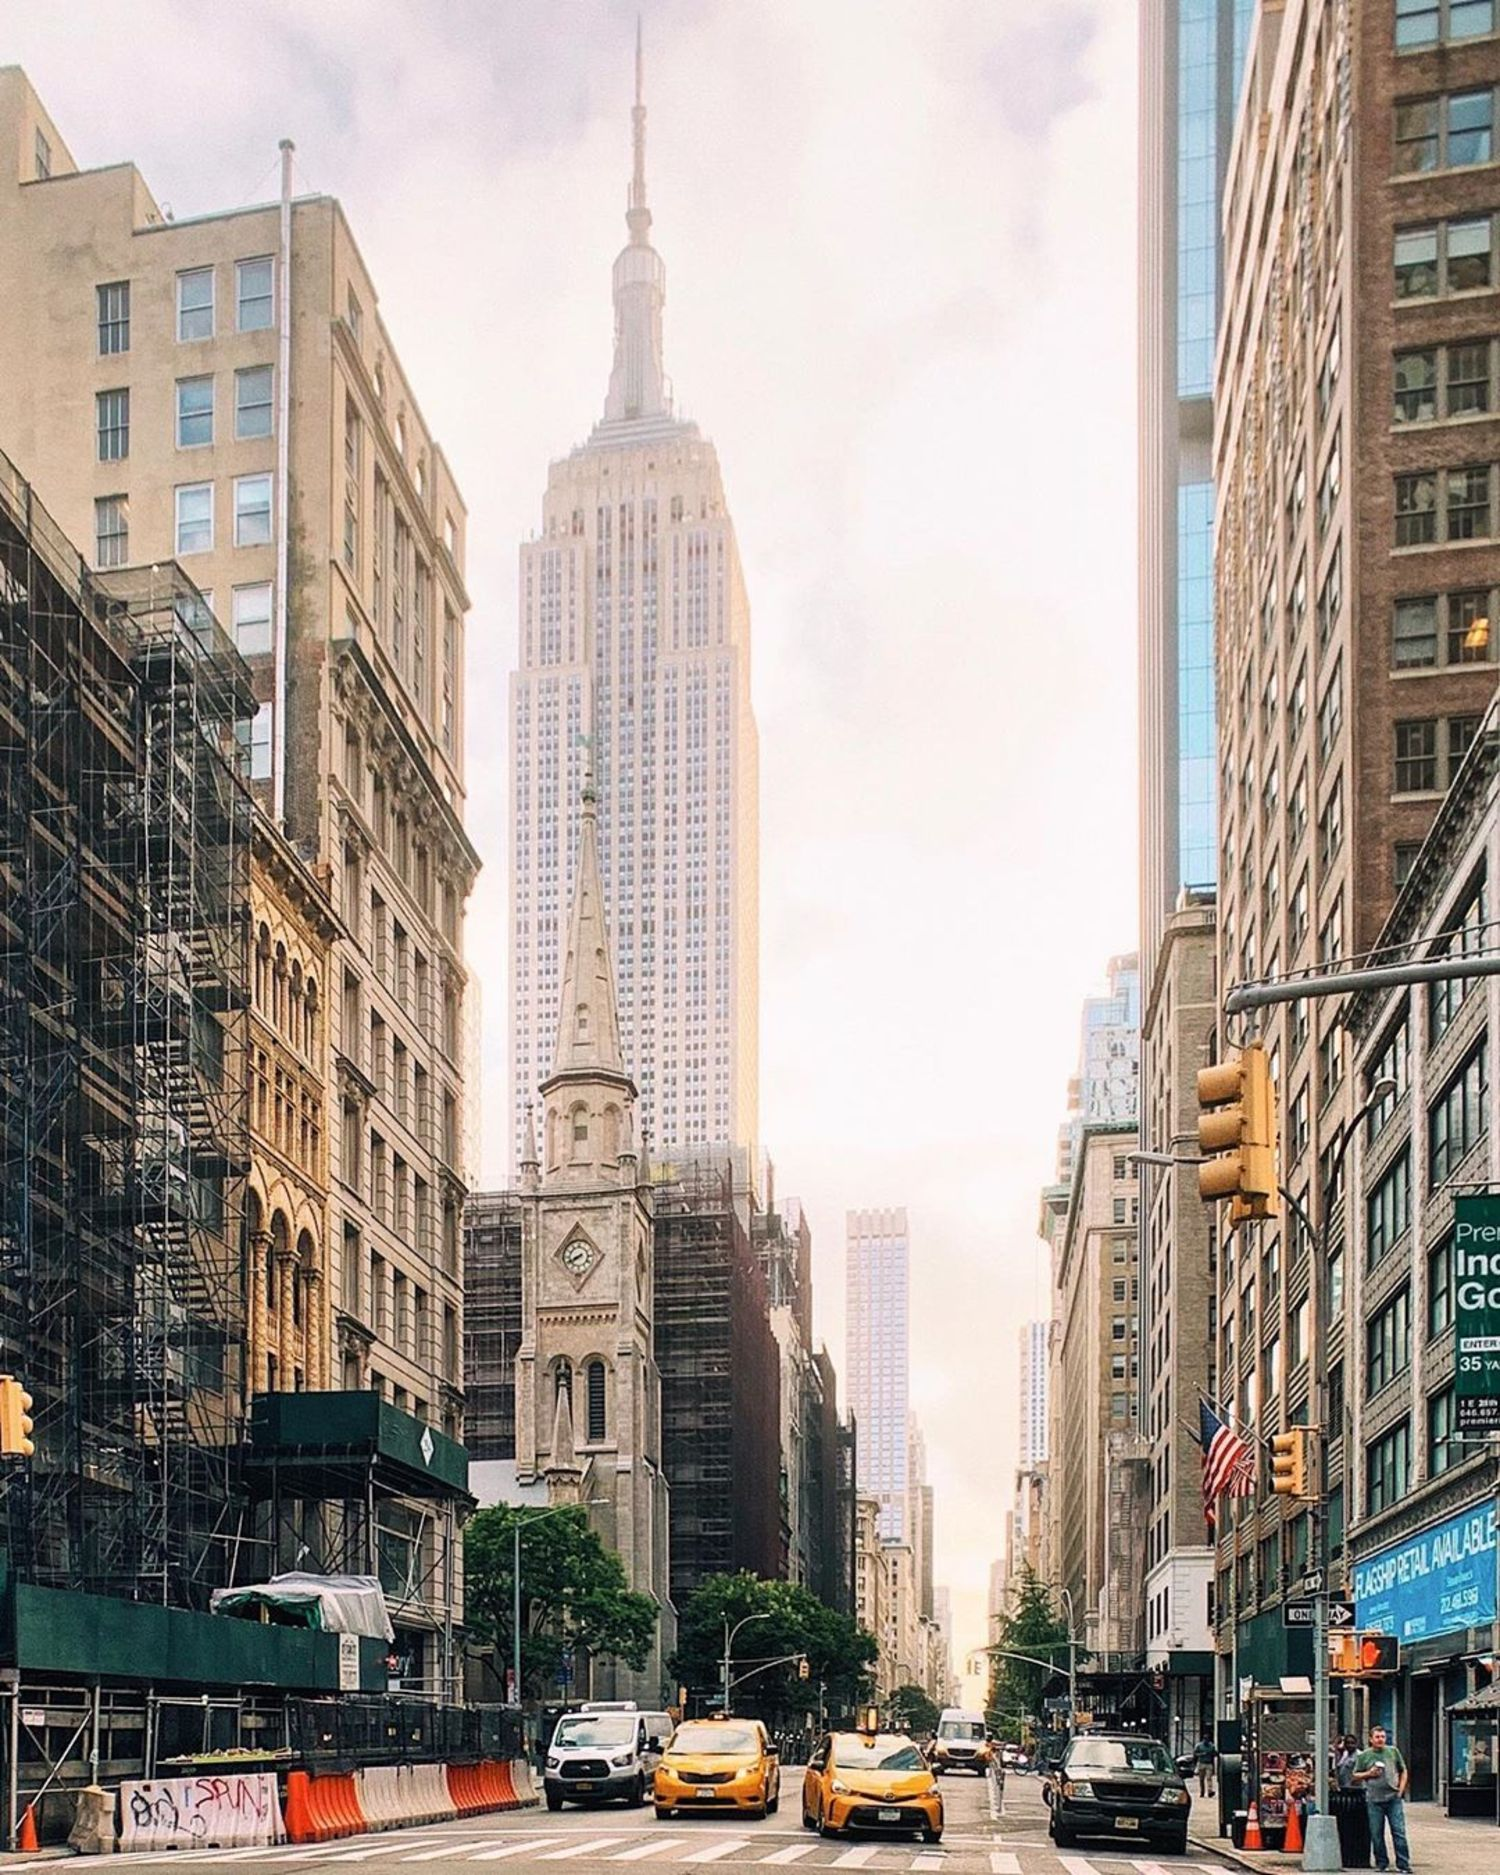 5th Avenue and Empire State Building, Manhattan